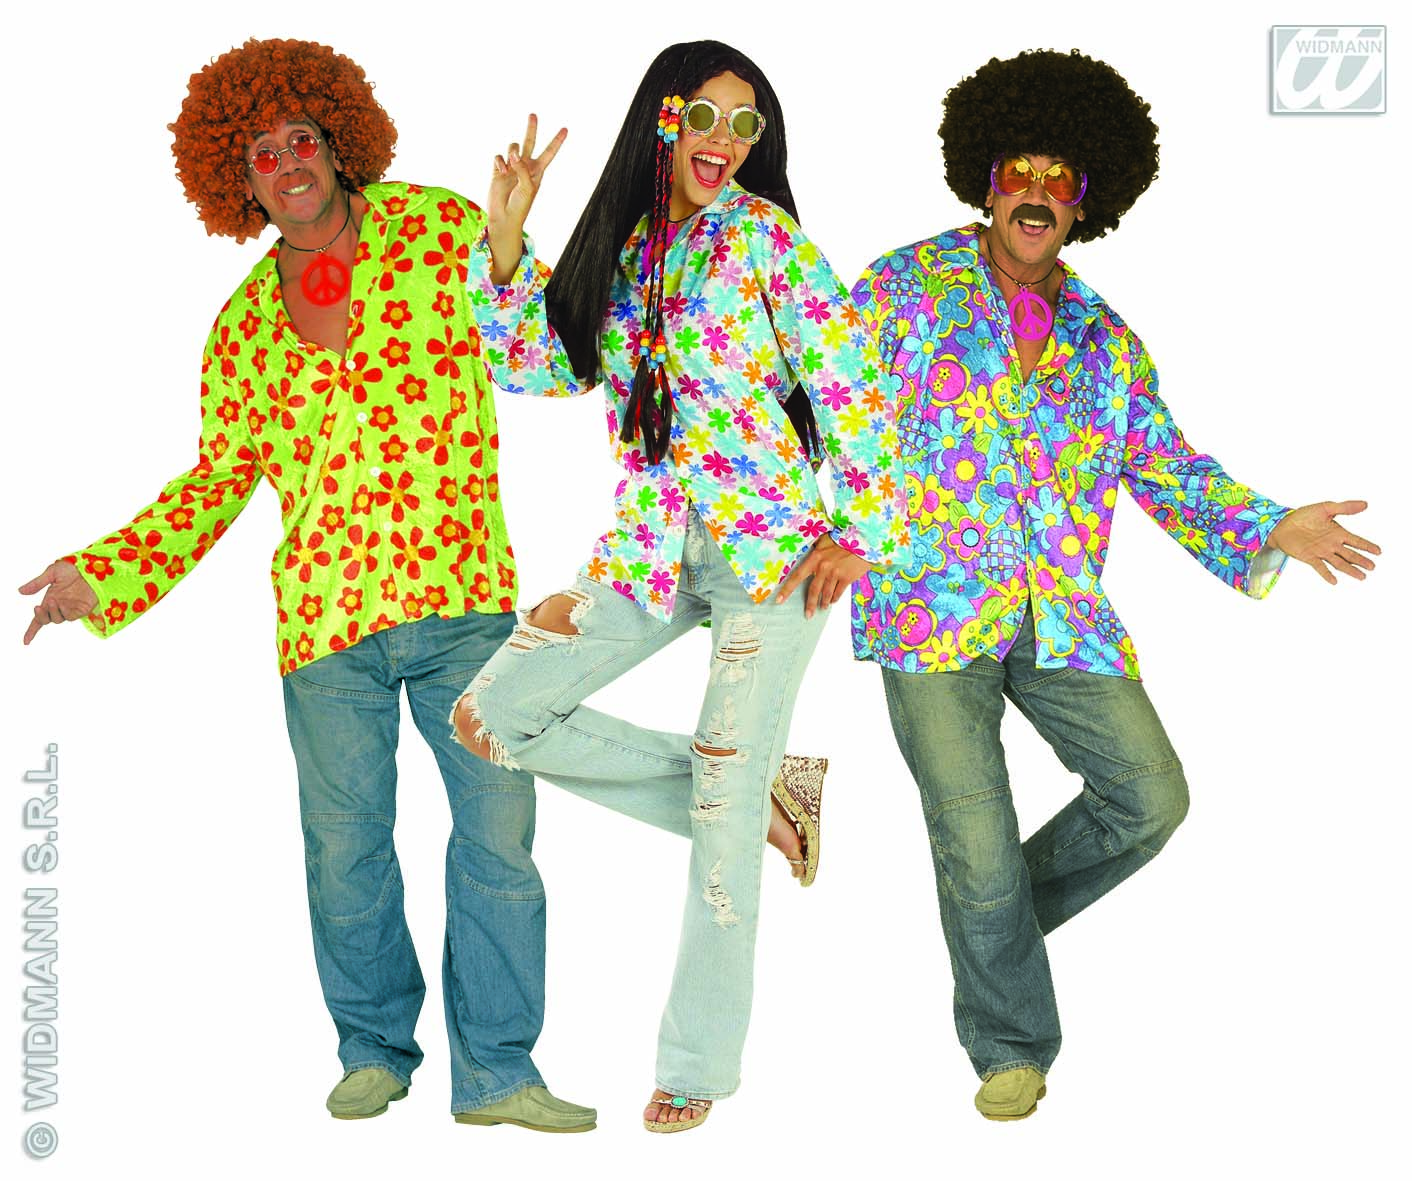 the gallery for gt hippie fashion 1960s men